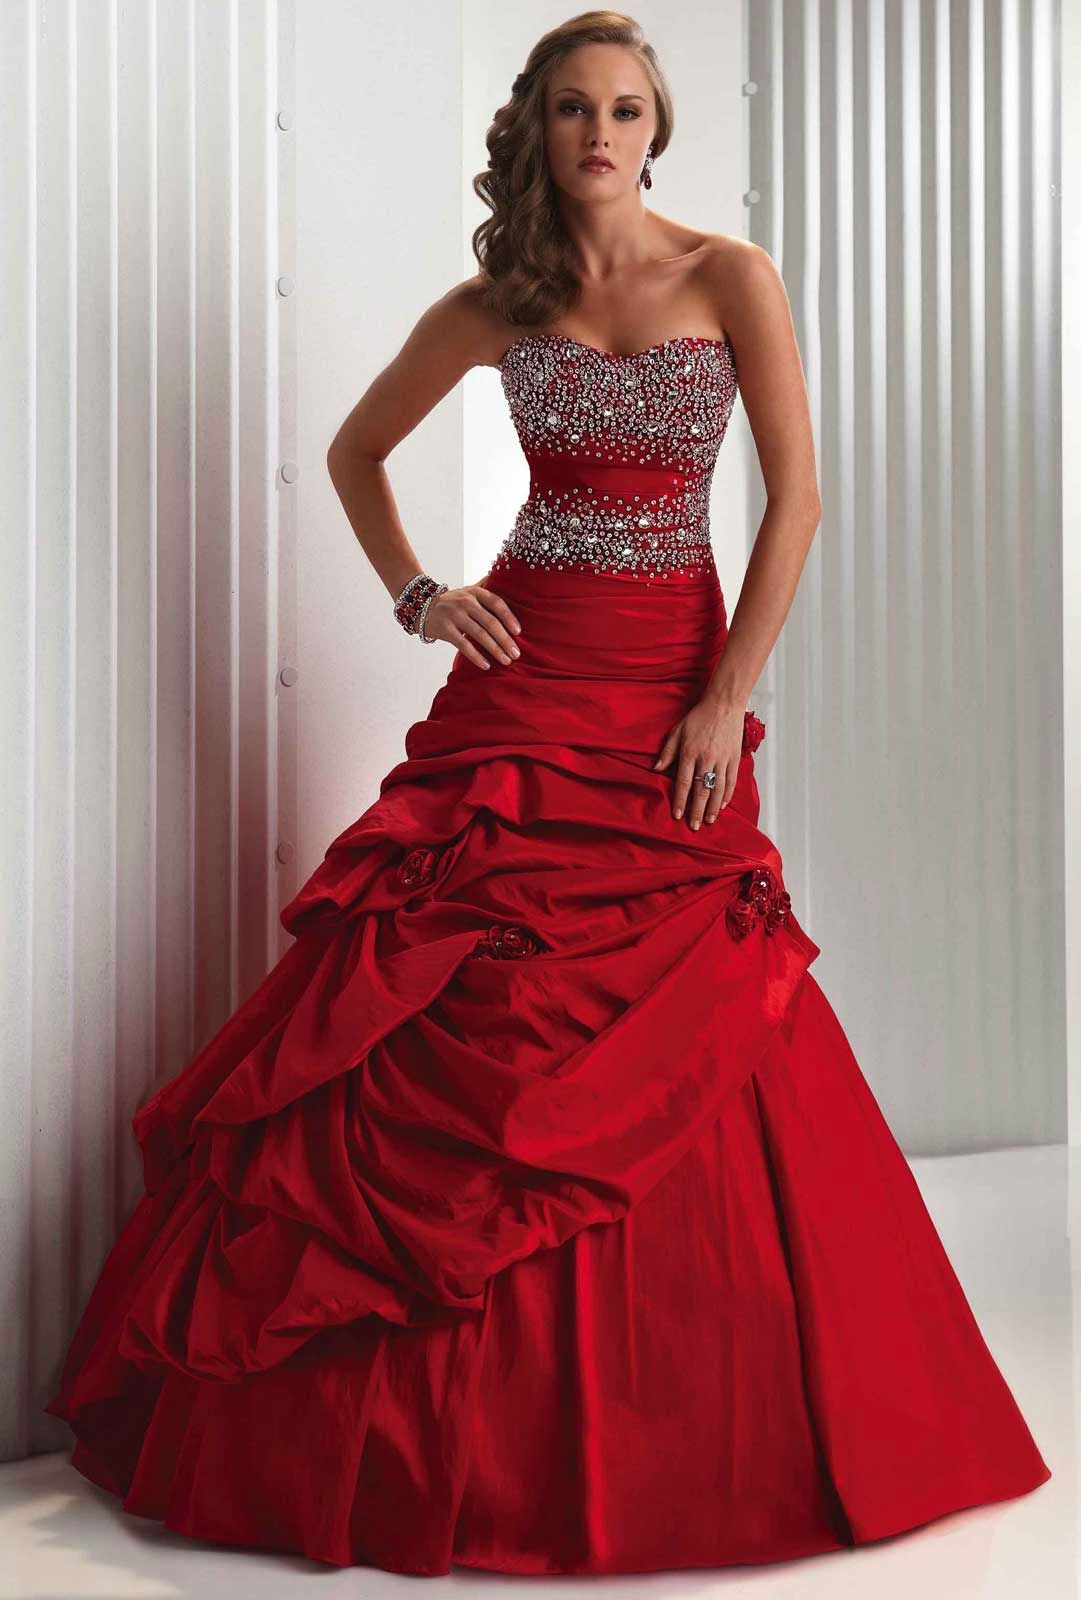 Vera Wang Prom Dresses Red Fashion Dresses